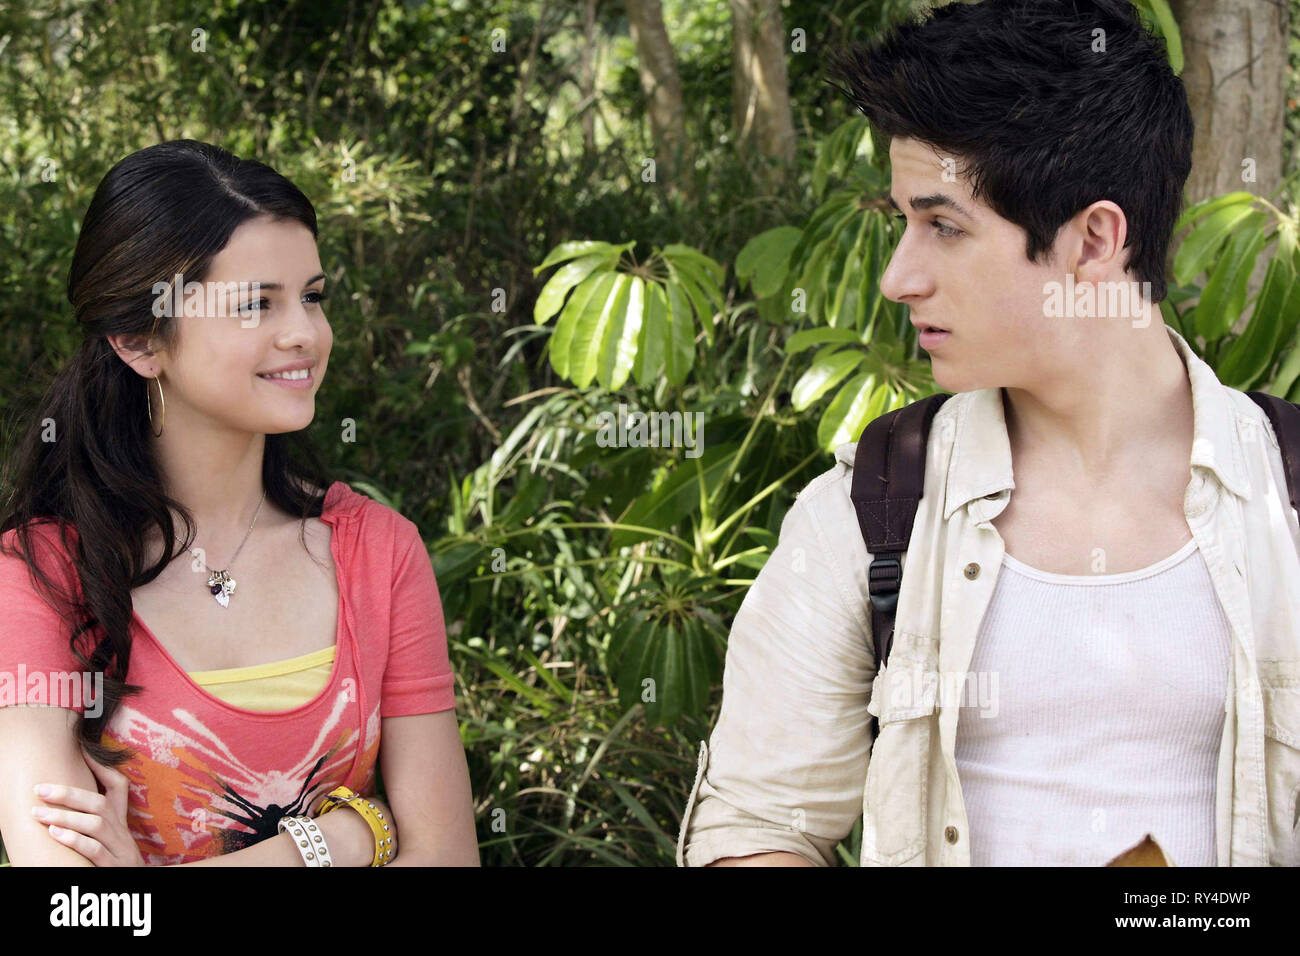 GOMEZ,HENRIE, WIZARDS OF WAVERLY PLACE: THE MOVIE, 2009 - Stock Image